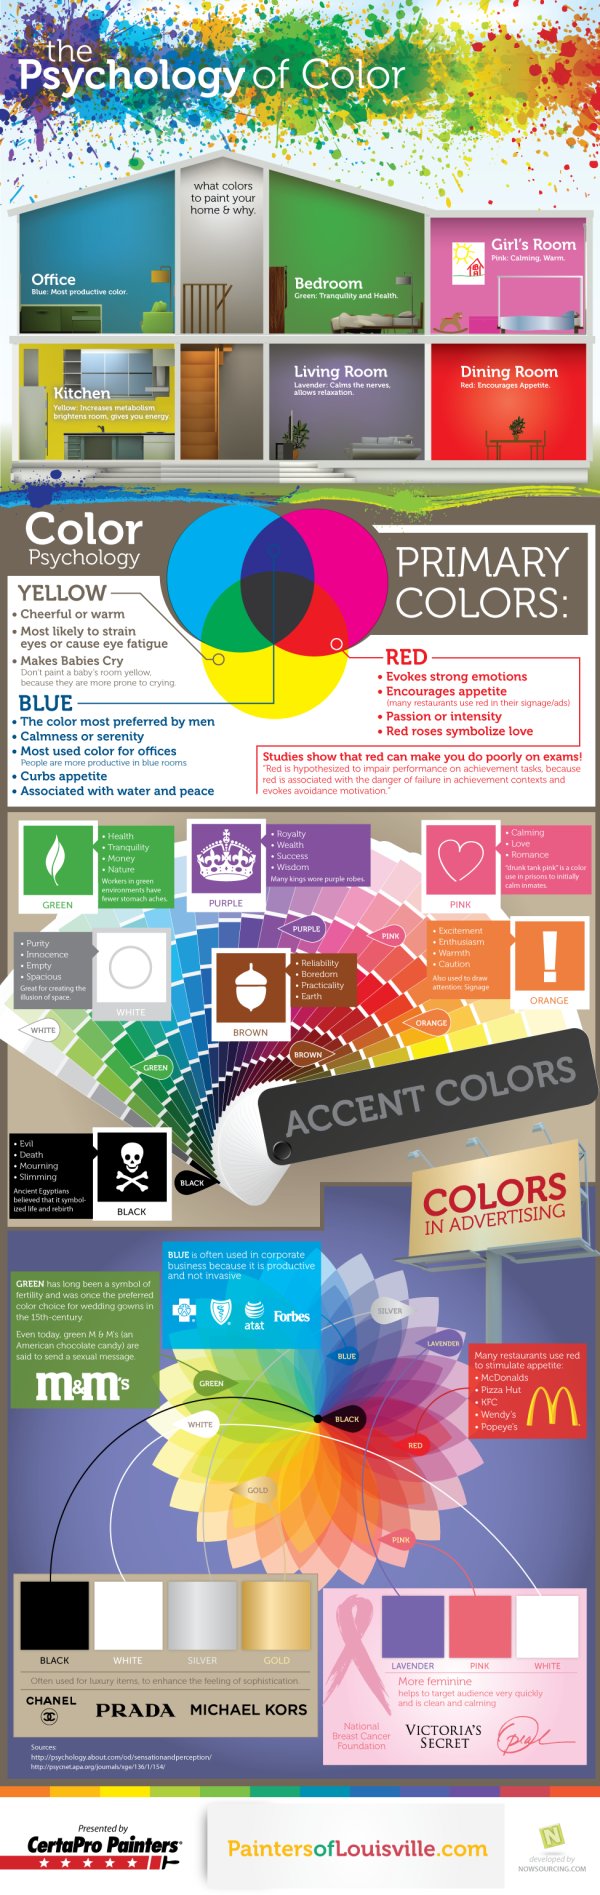 Psychology of color.  Interesting.